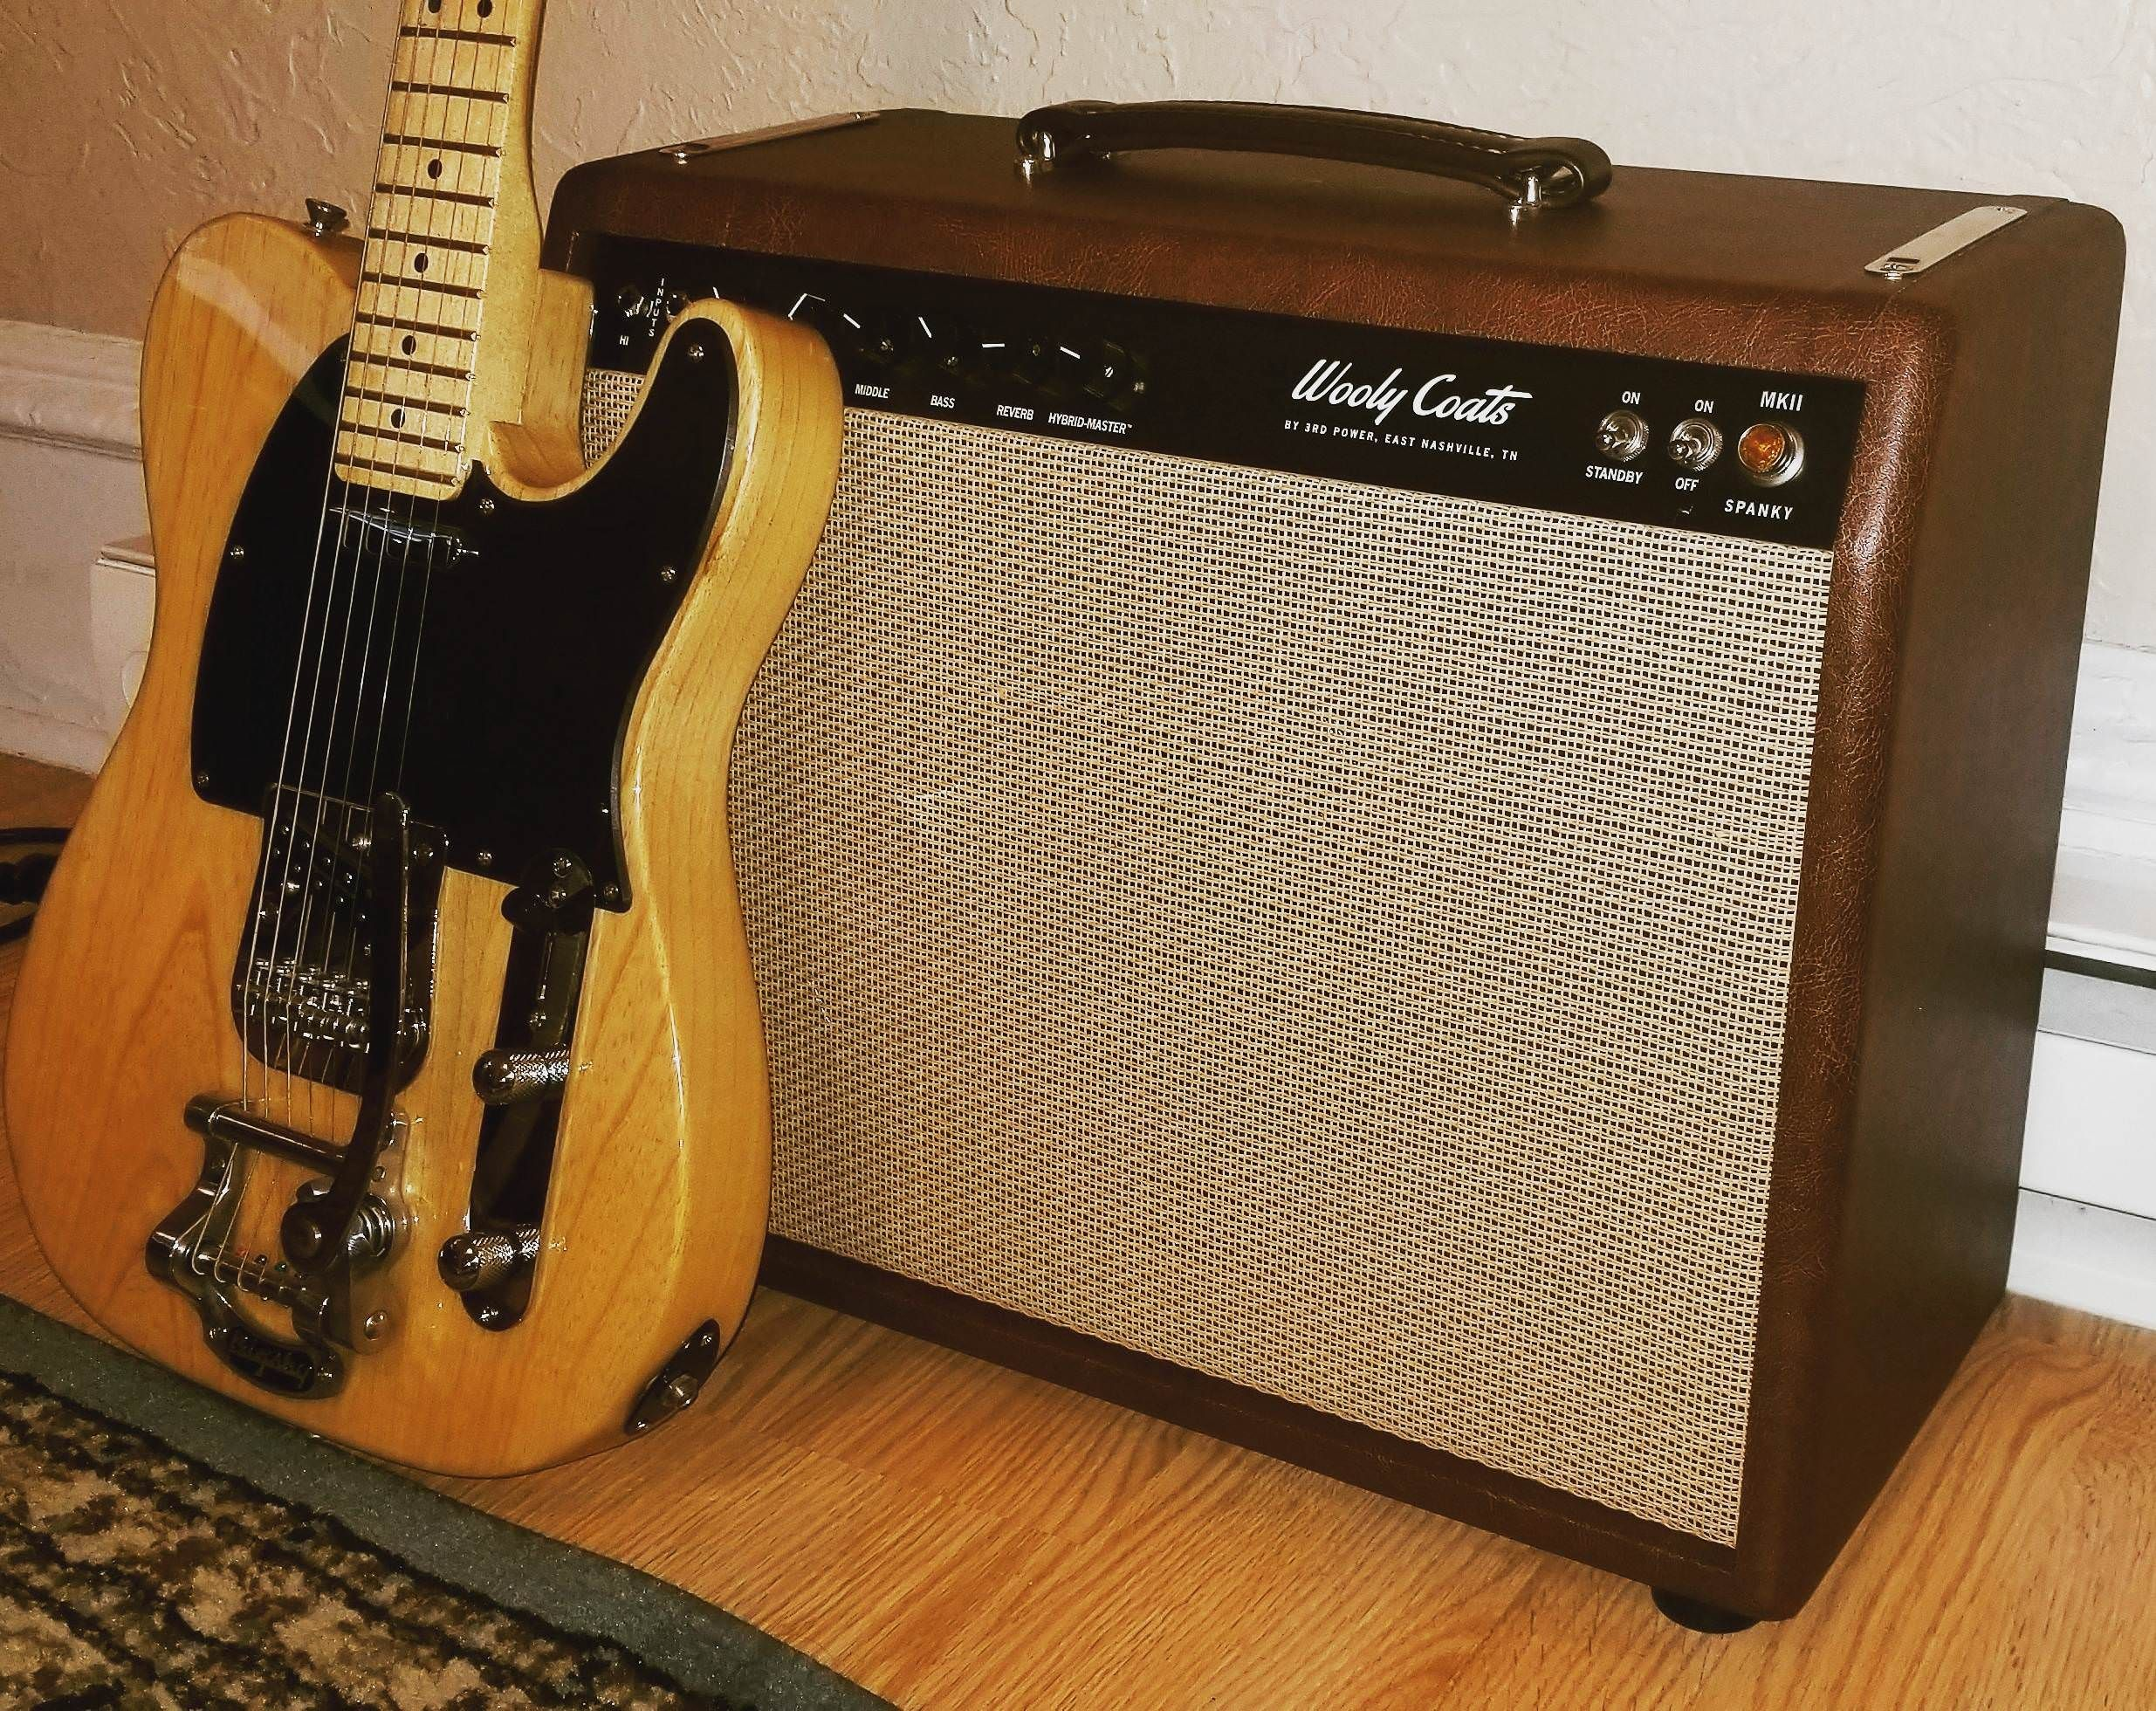 New Amp Day Wooly Coats Spanky Mkii With My Tele Build Cool Guitar On Pinterest Steampunk Fender Telecaster And Epiphone